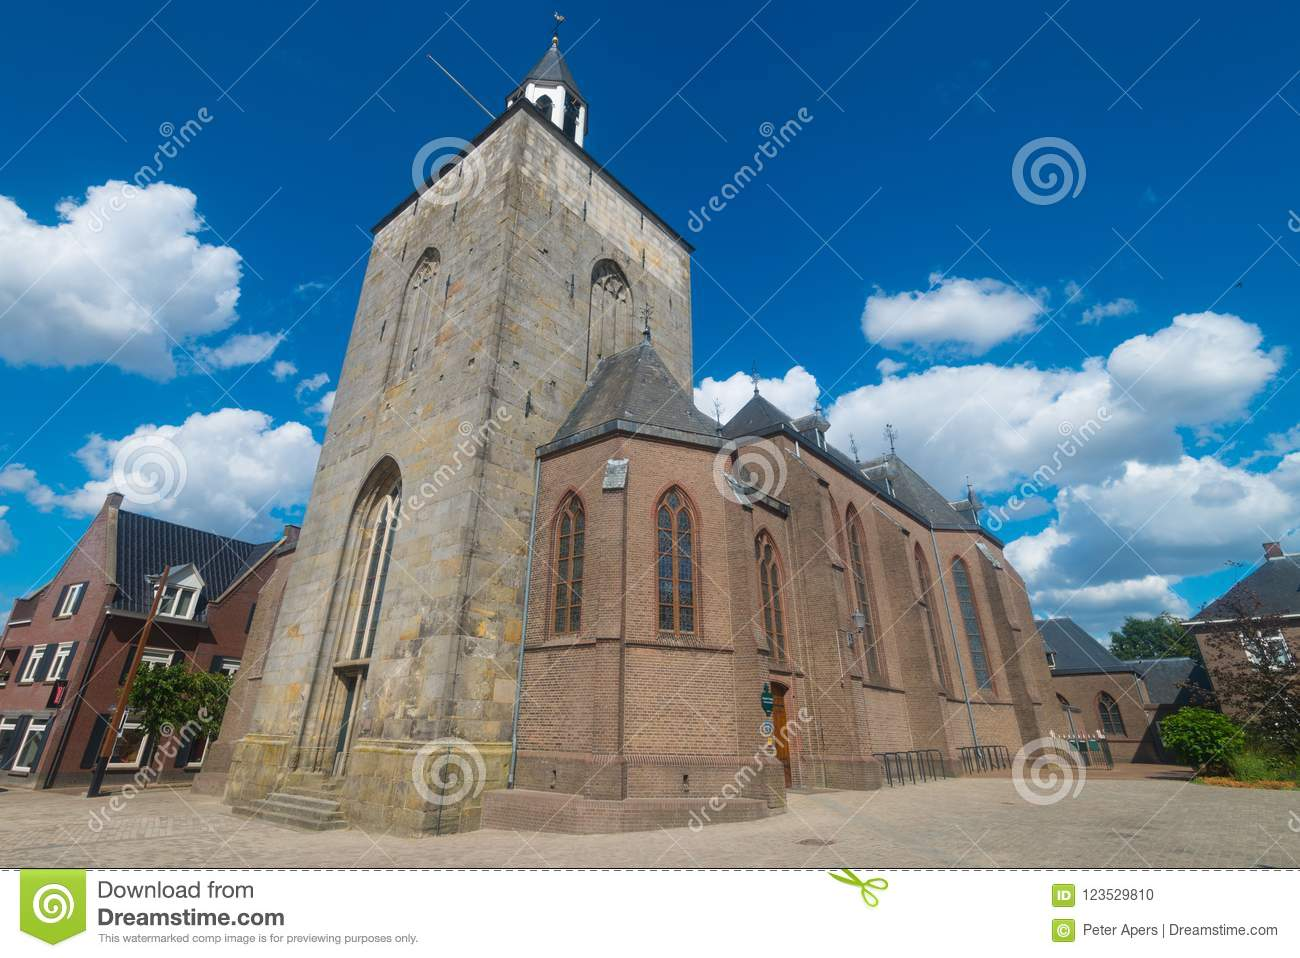 Download Saint Pancratius Basilica In Tubbergen, The Netherlands Stock Photo - Image of eastern, lovely: 123529810